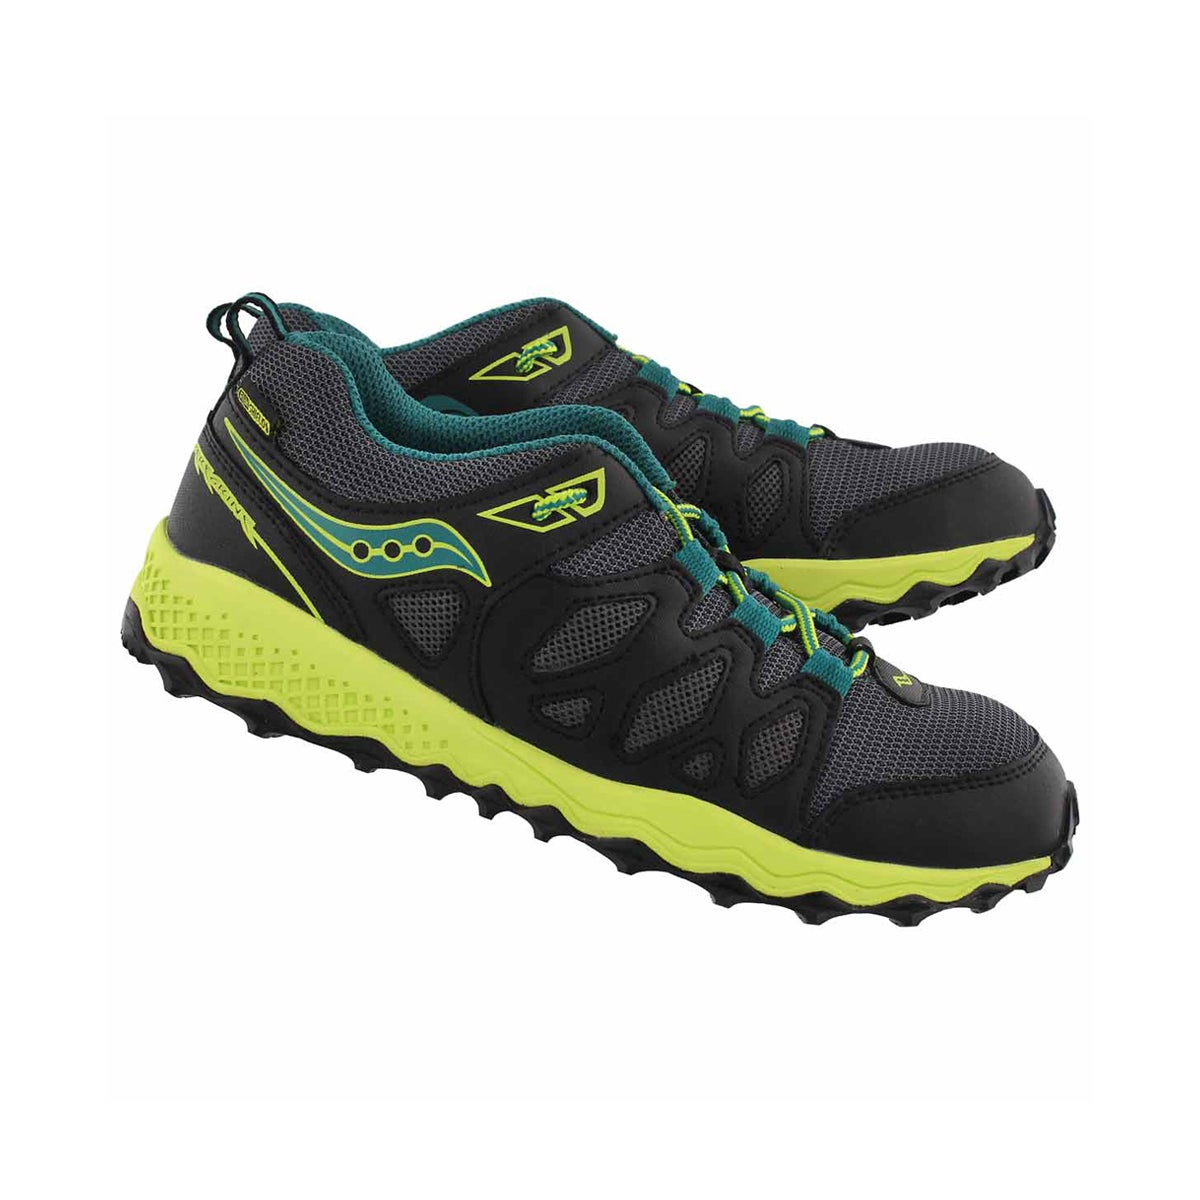 Bys PeregrineShield blk/lime runner